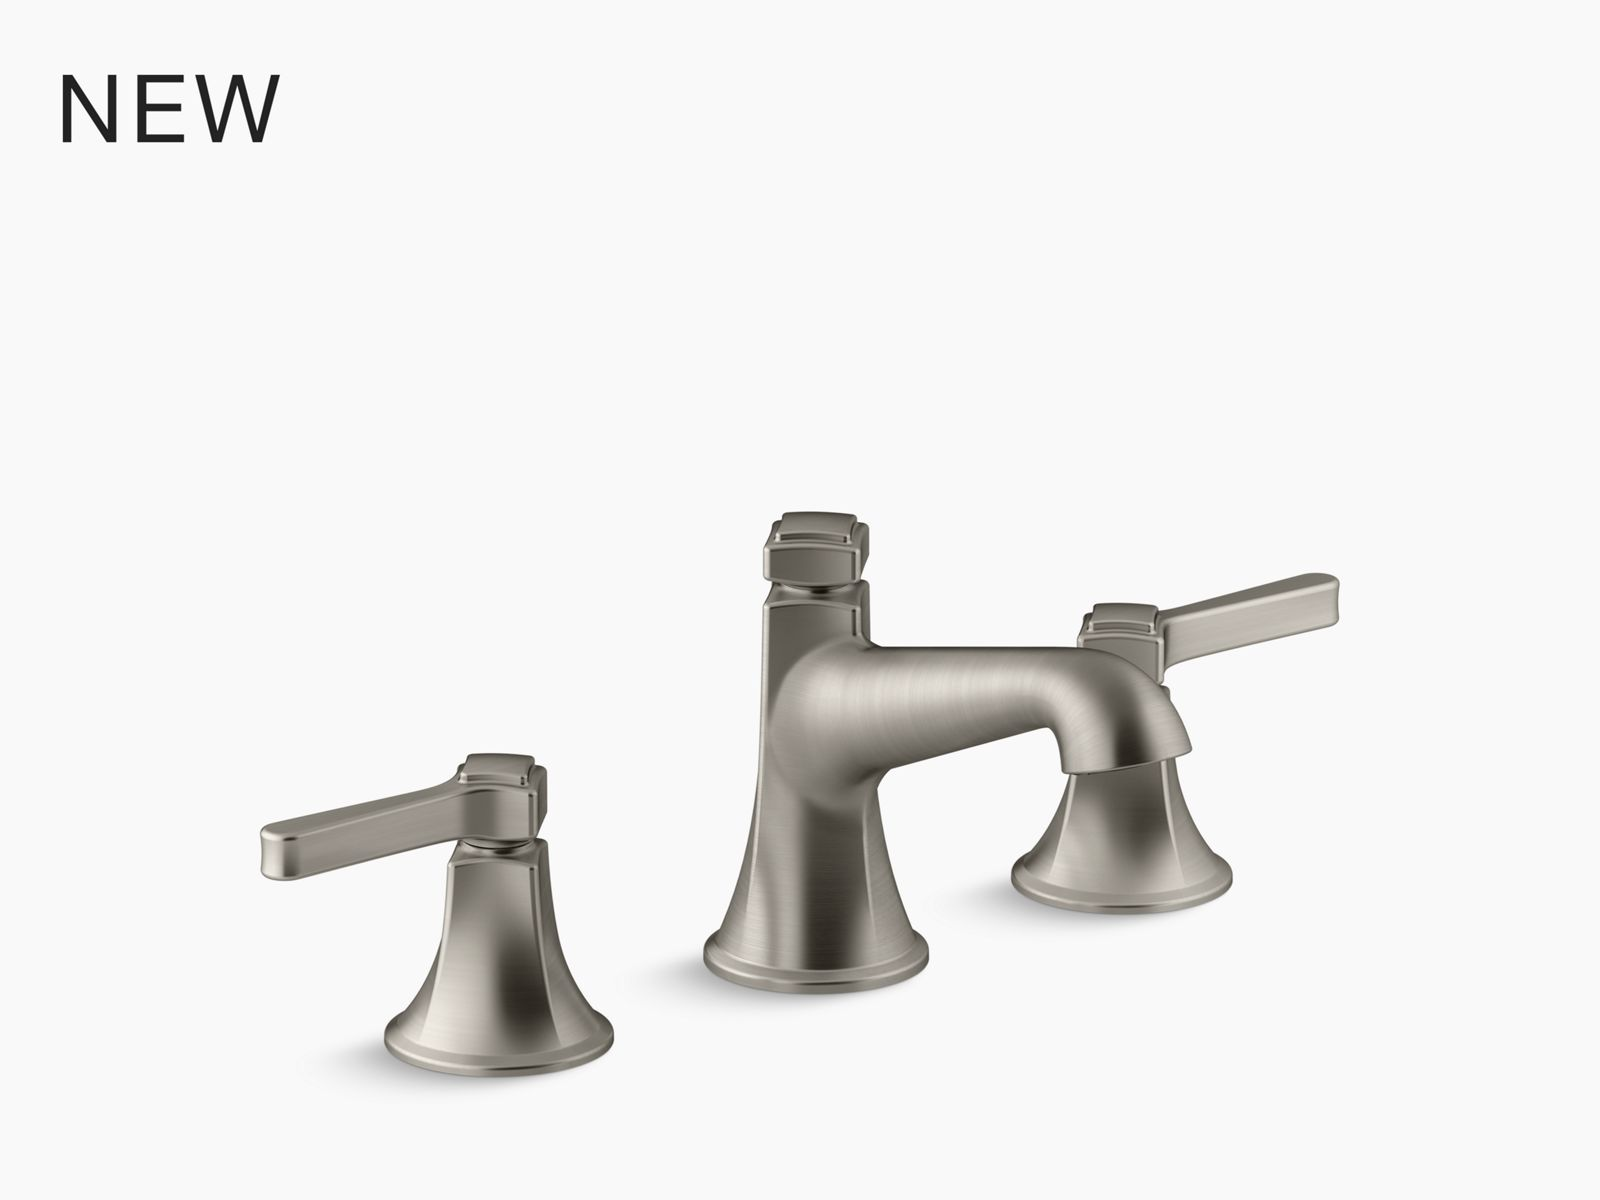 8 escutcheon plate for insight and kinesis faucet